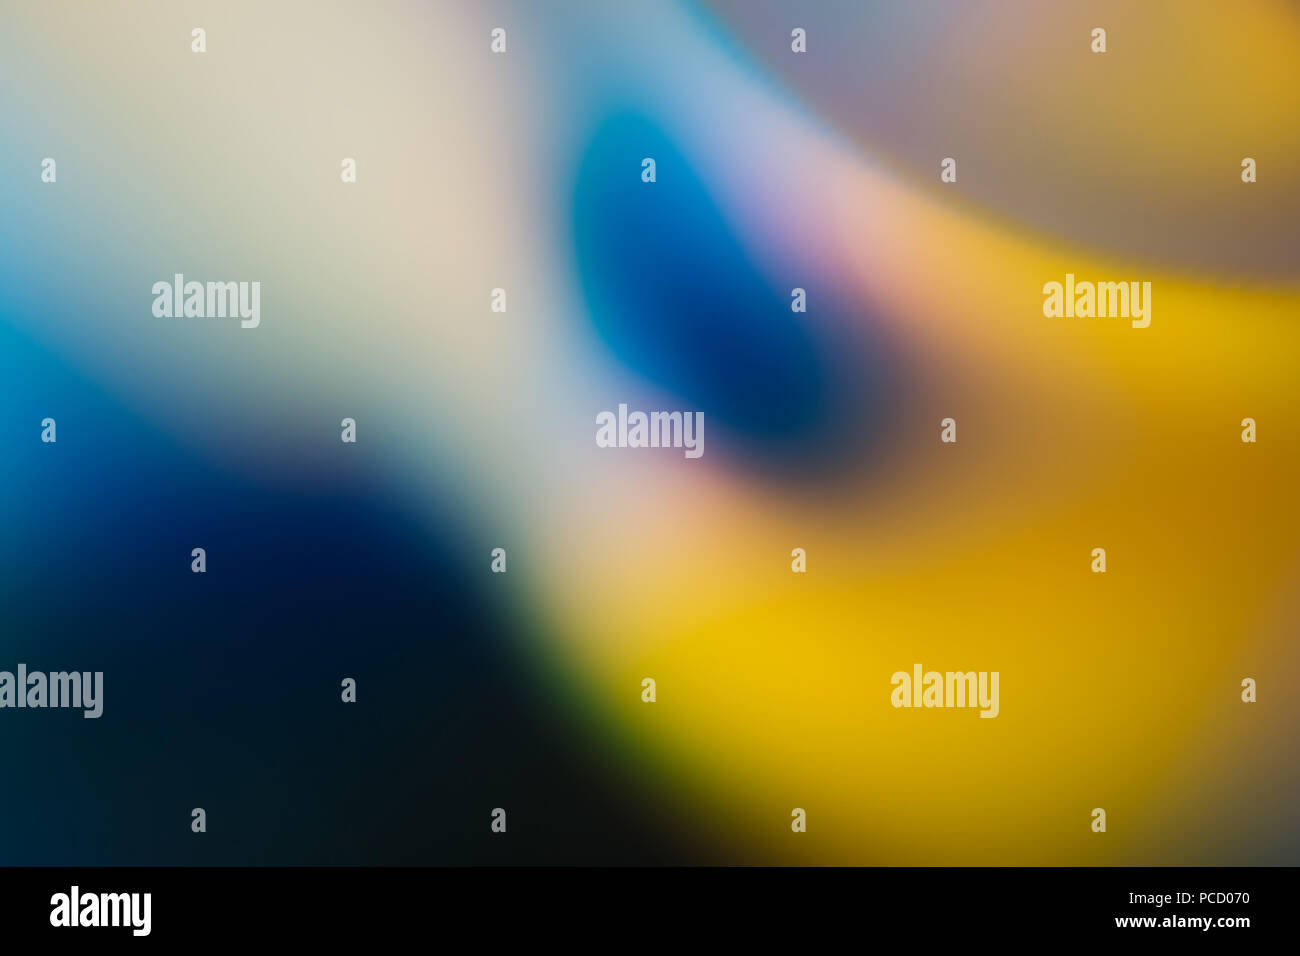 Abstract Photography Blurred Muted Colours - Stock Image